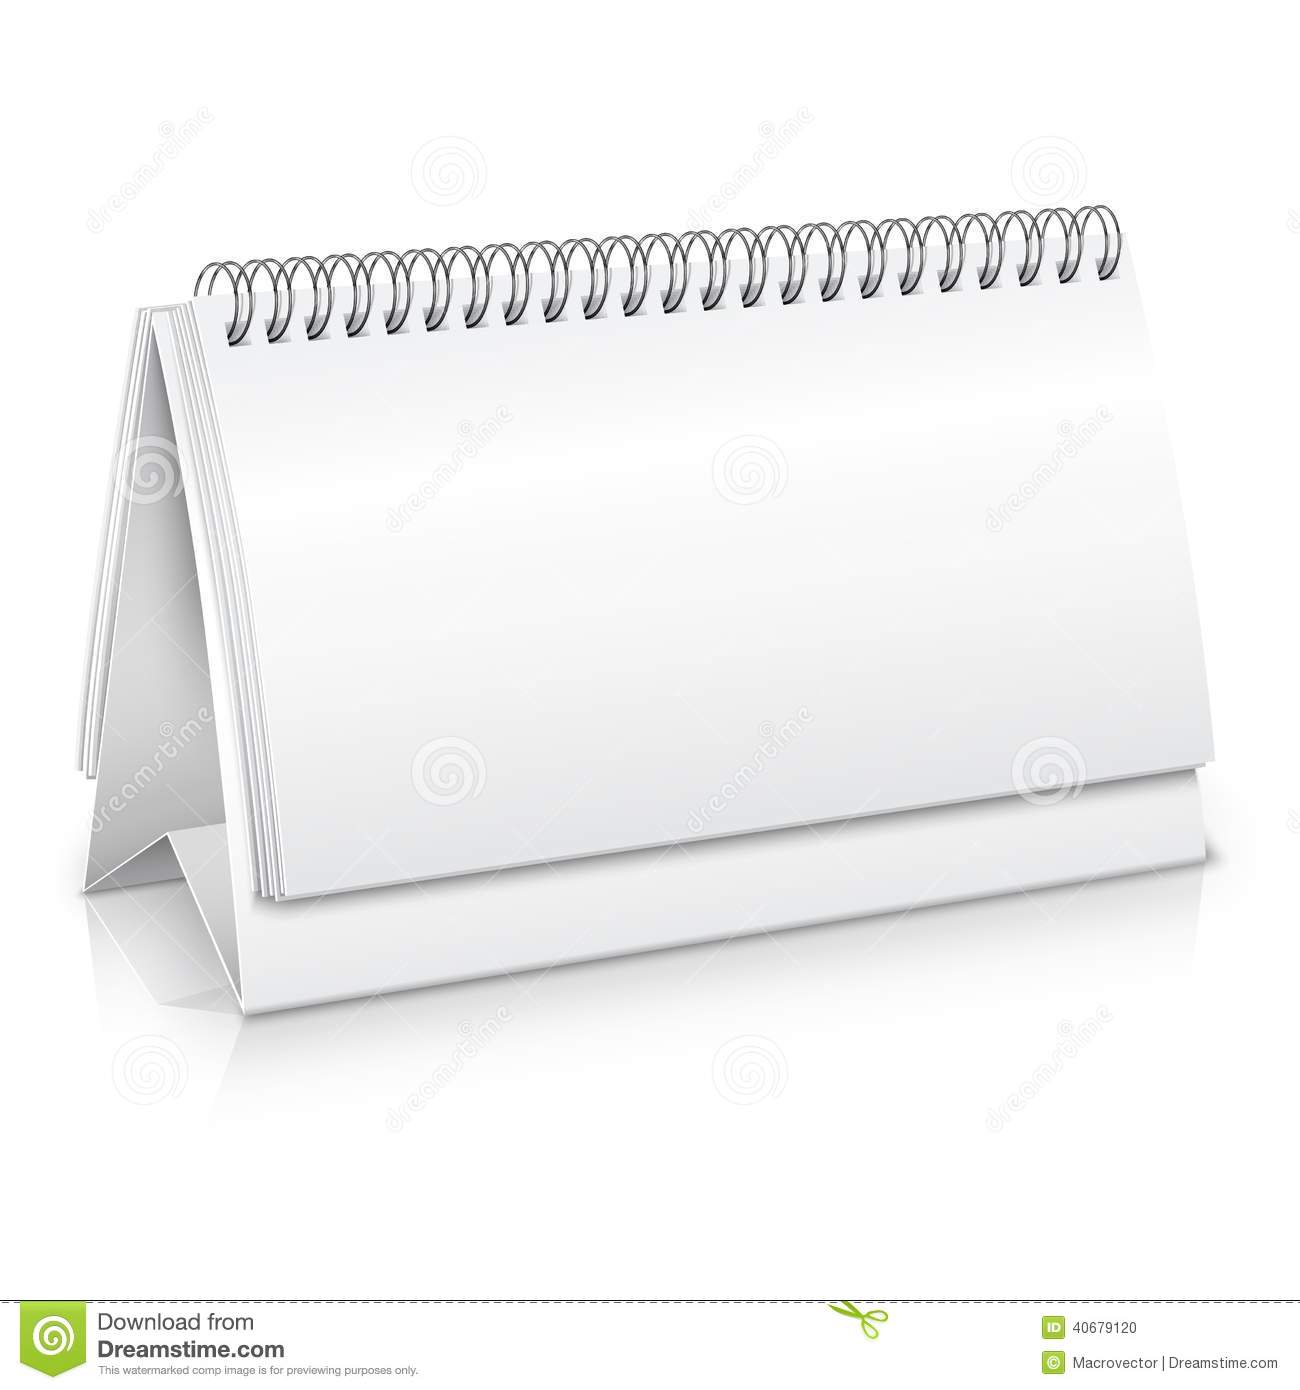 Blank Vector Calendar Template : Desk calendar mockup stock vector image of decorative